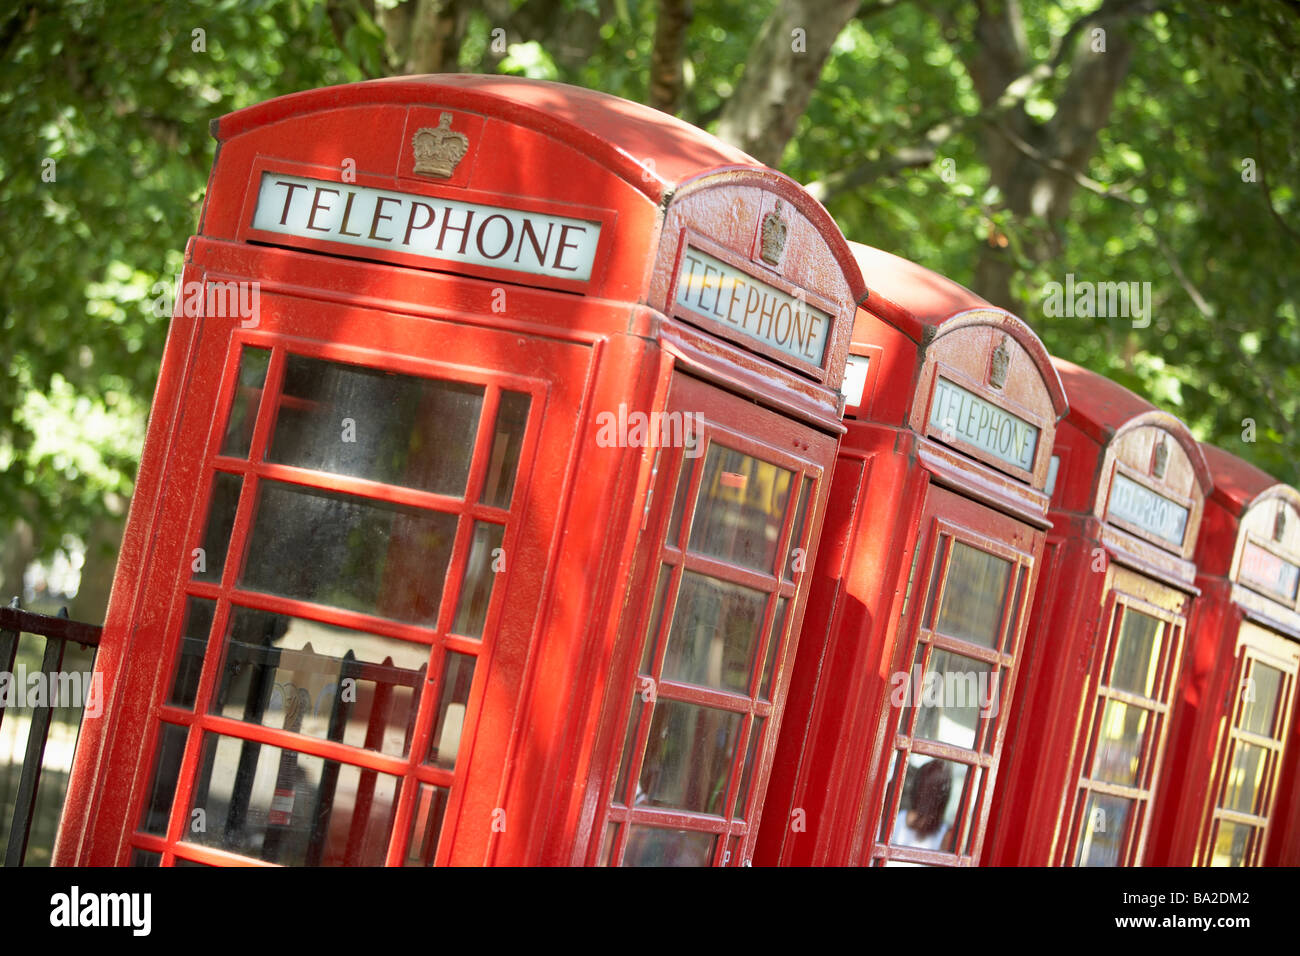 Red Telephone Booths In A Row - Stock Image